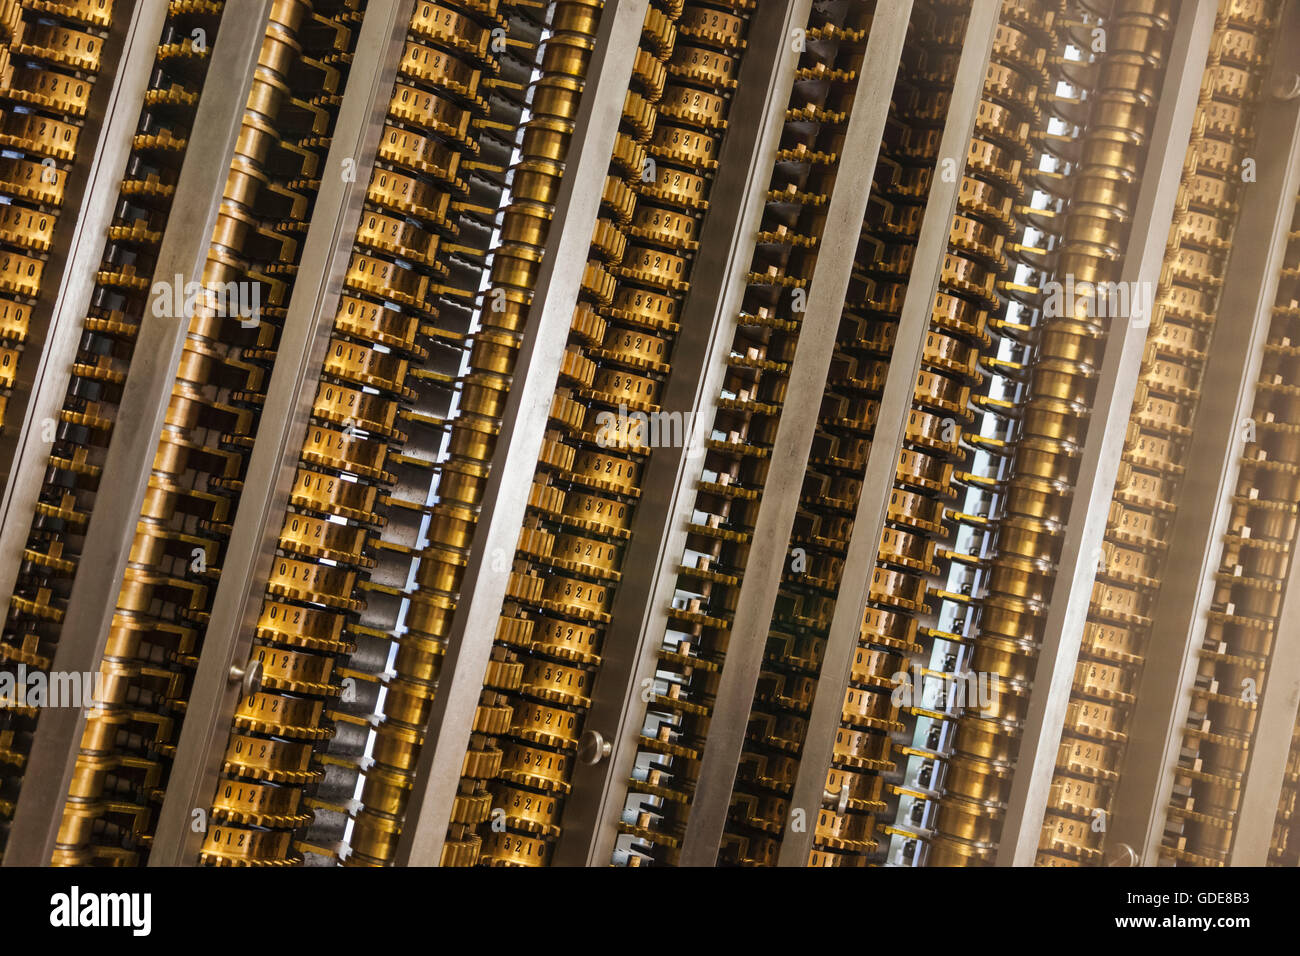 England,London,Kensington,Science Museum,Portion of Charles Babbage's Difference Engine No.2 dated 1847-49 - Stock Image